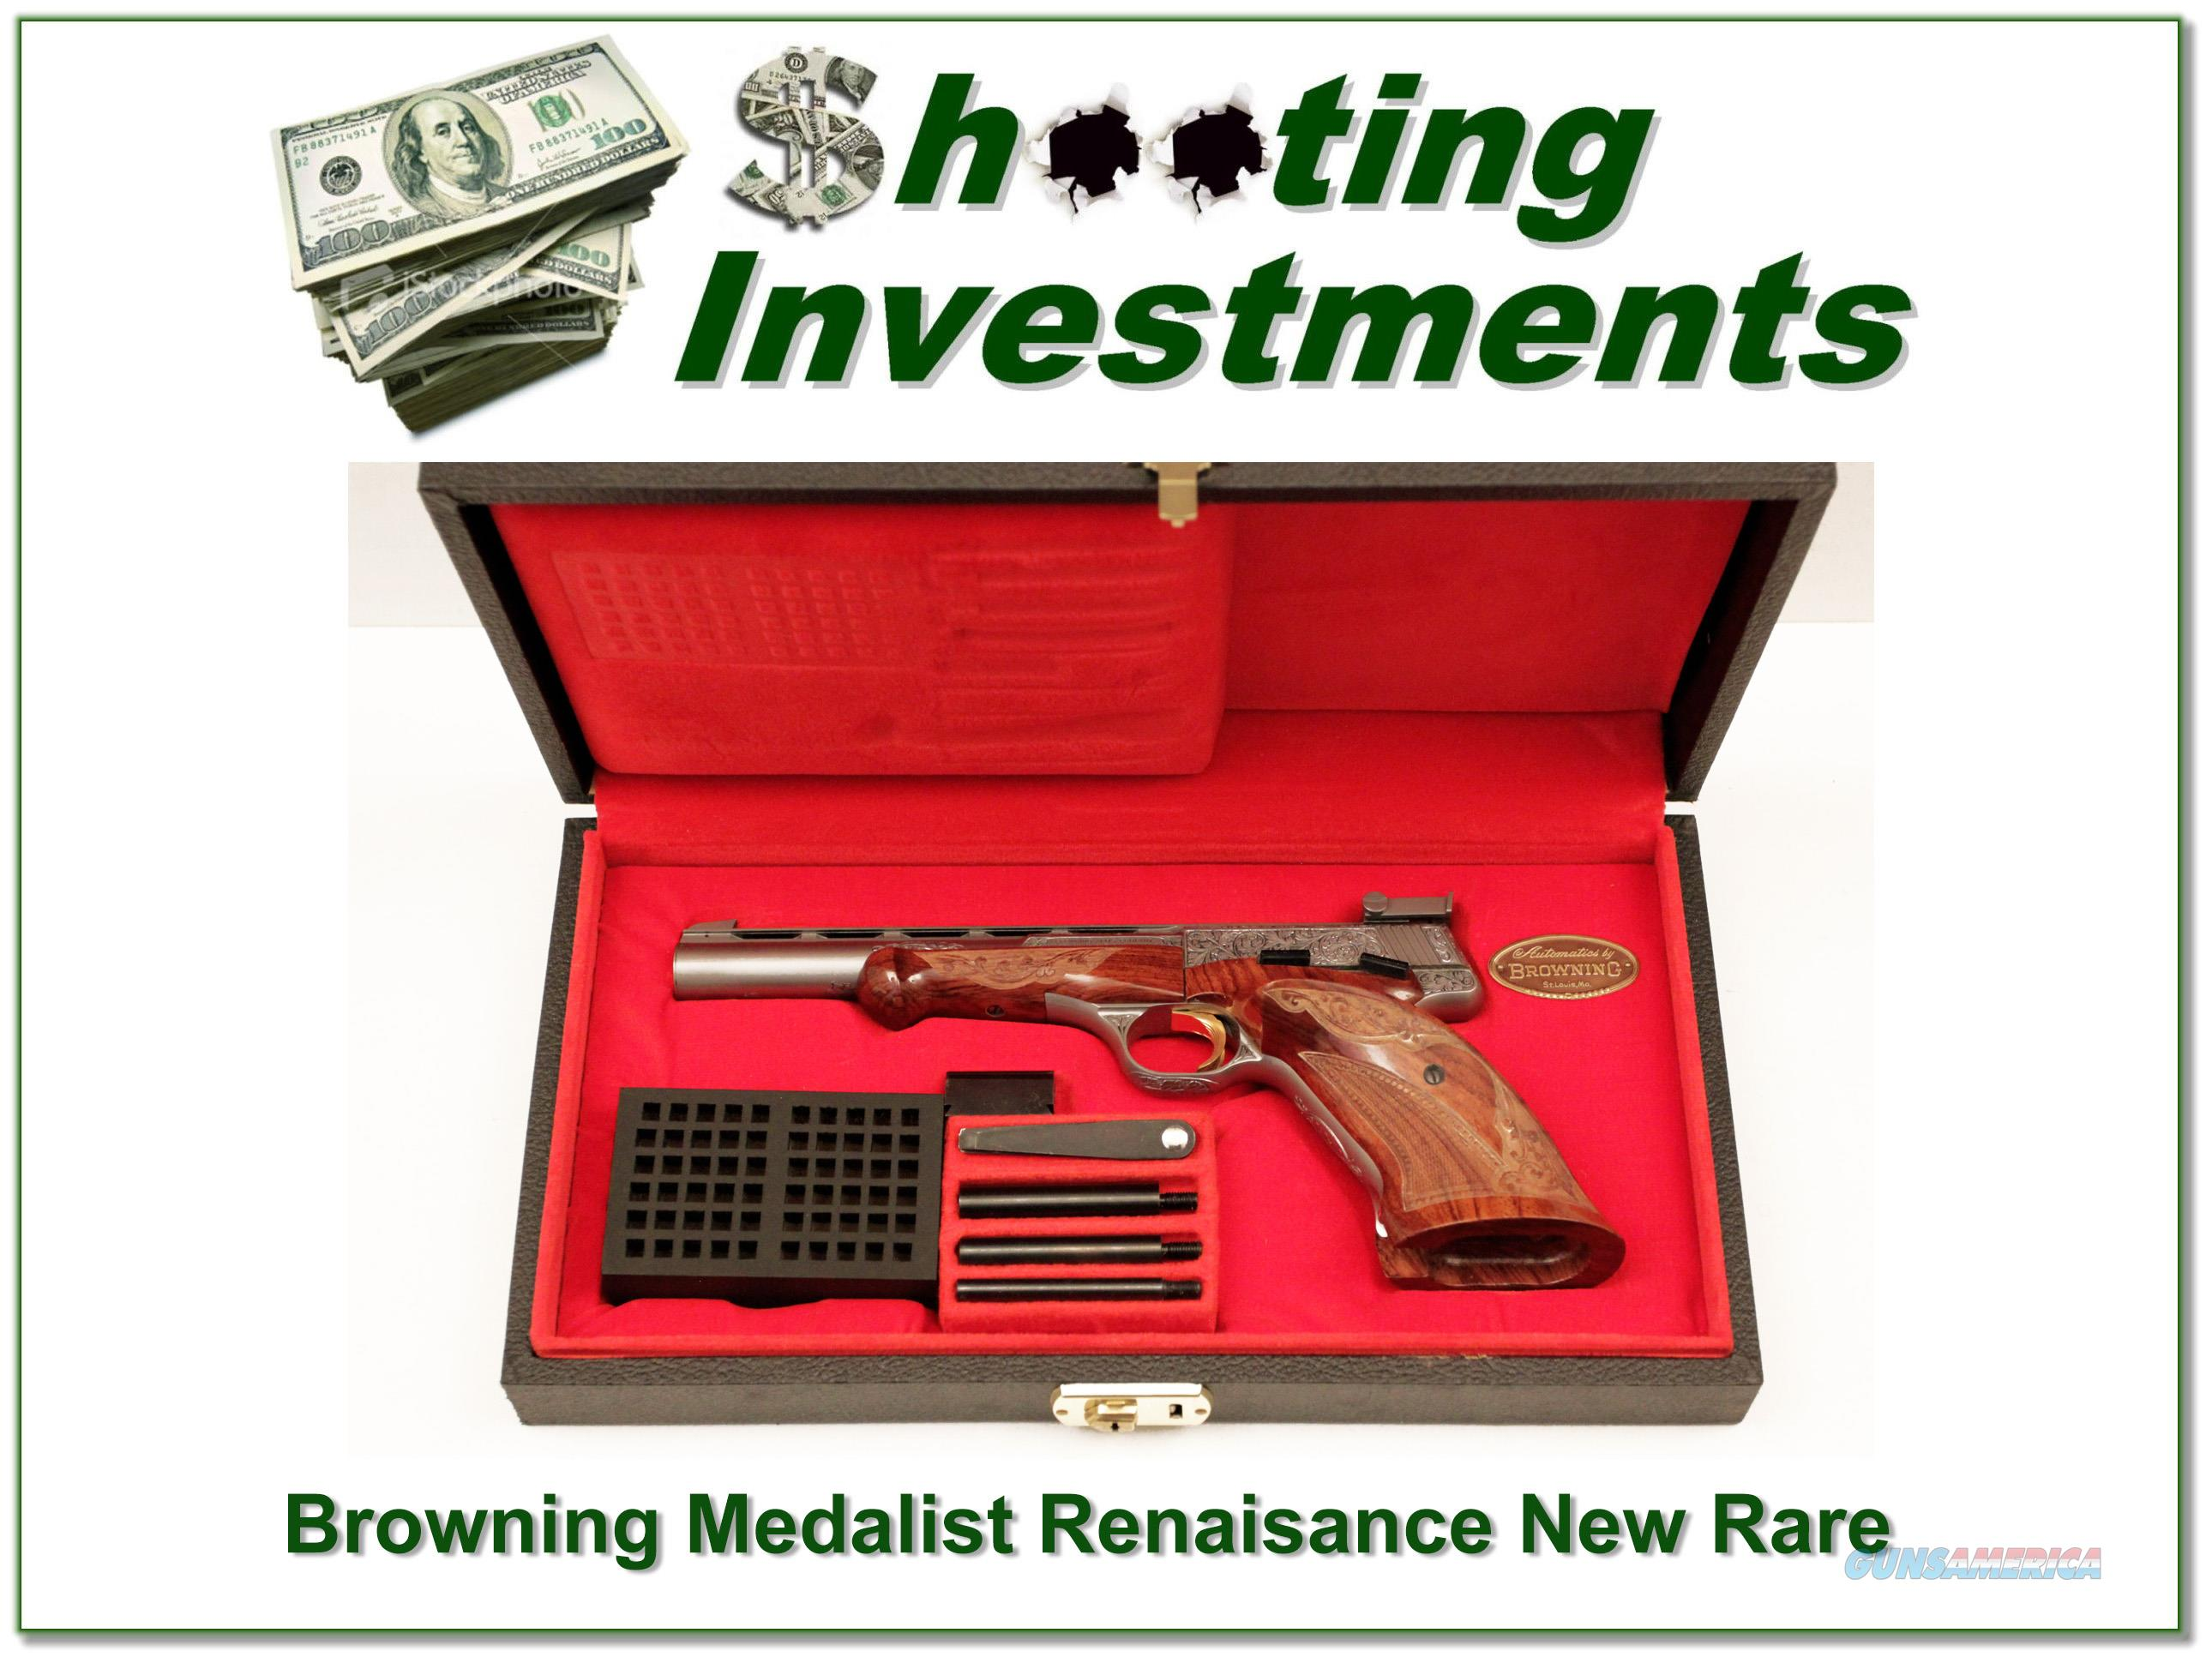 Browning Medalist Renaissance RARE unfired in case!  Guns > Pistols > Browning Pistols > Other Autos